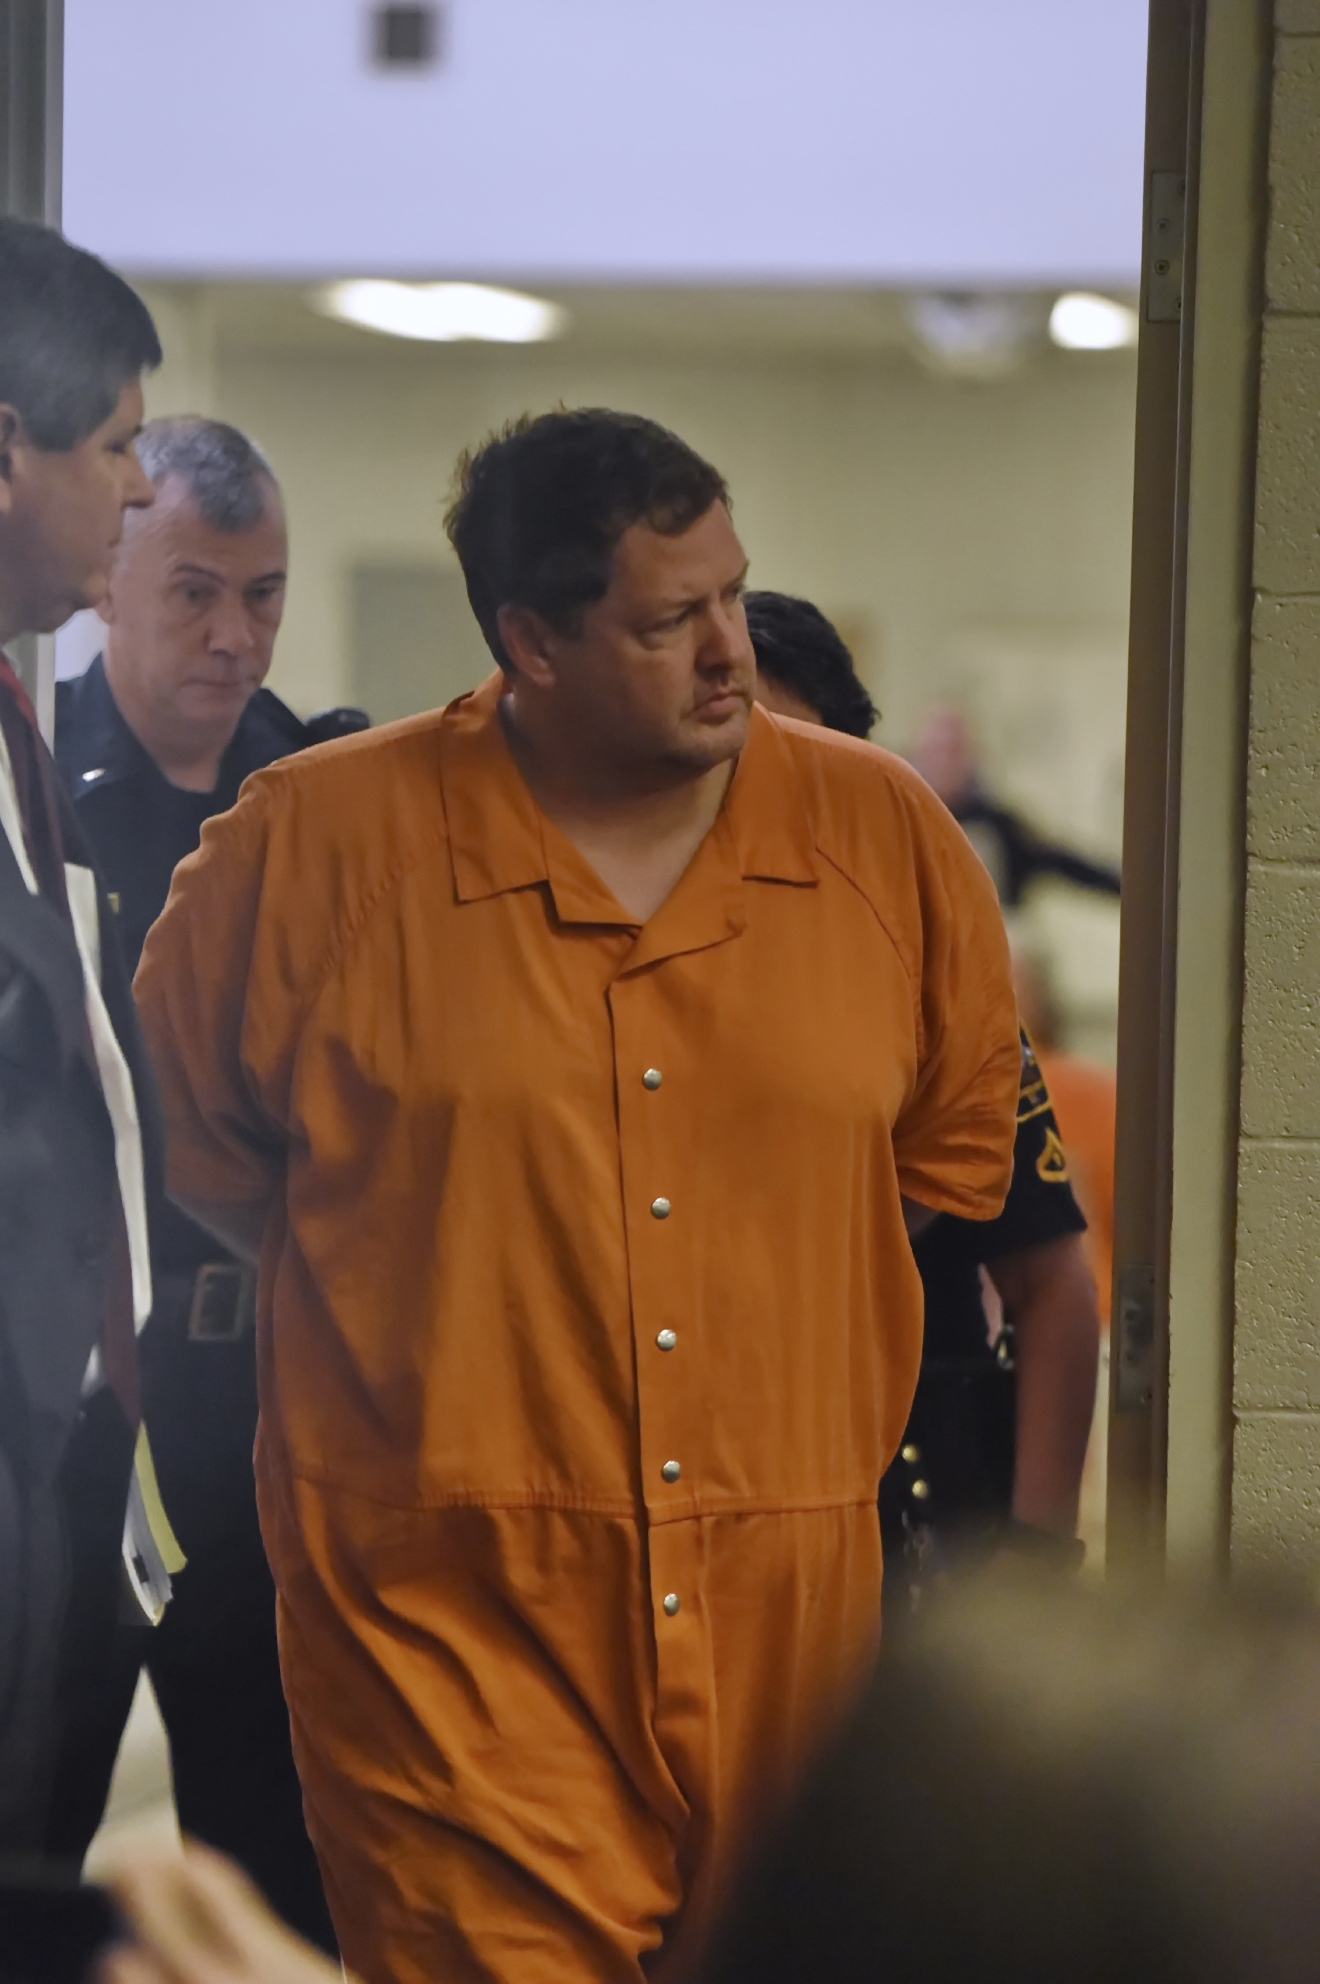 Todd Kohlhepp's enters the courtroom of Judge Jimmy Henson for a bond hearing at the Spartanburg Detention Facility, in Spartanburg, S.C. Sunday, Nov. 6, 2016.  (AP Photo/Richard Shiro)